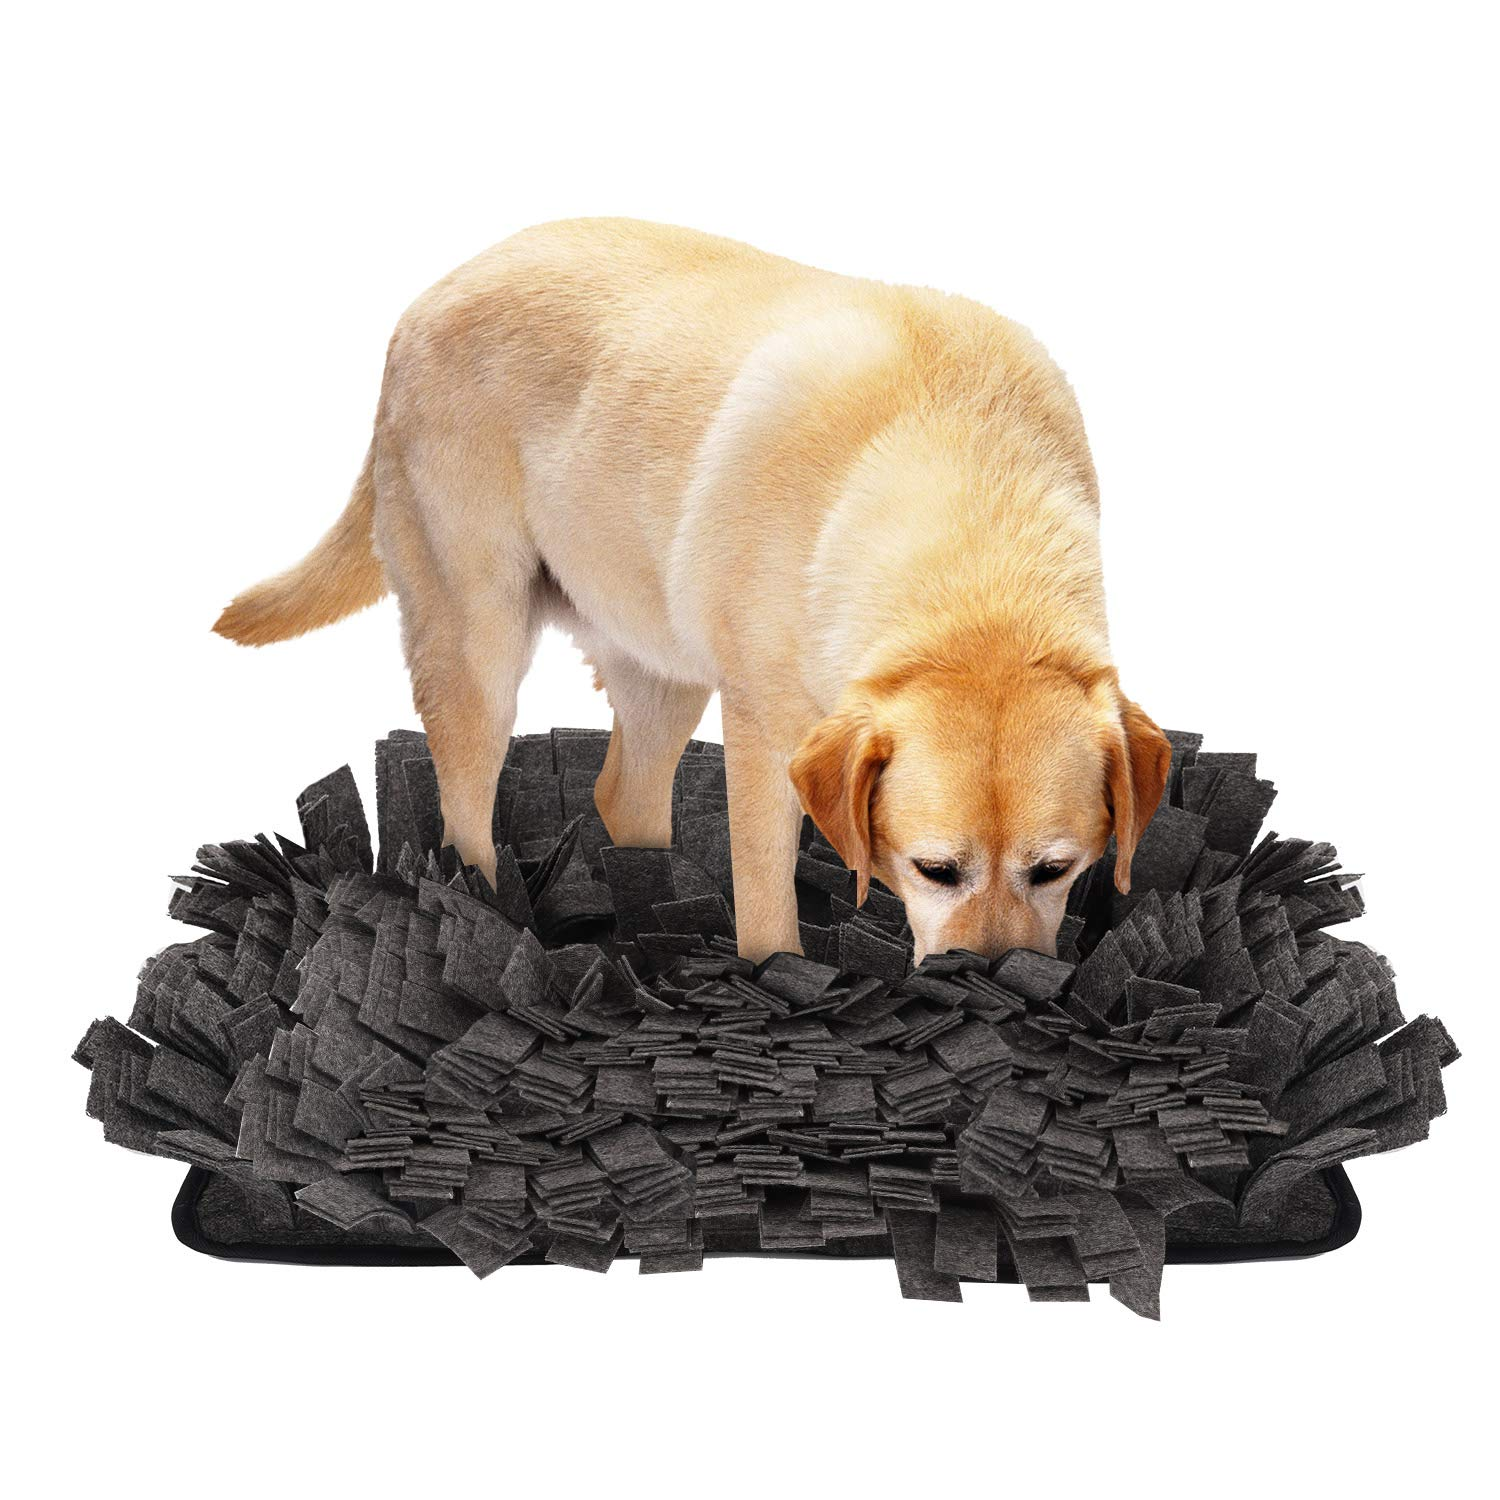 PAWABOO Dog Snuffle Mat, 17.3'' x 12.6'' Premium Foldable Dog Nosework Mat Slow Feeding Mat Dog Training and Feeding Mat Dog Play Mat for Small, Medium and Large Dogs, Gray